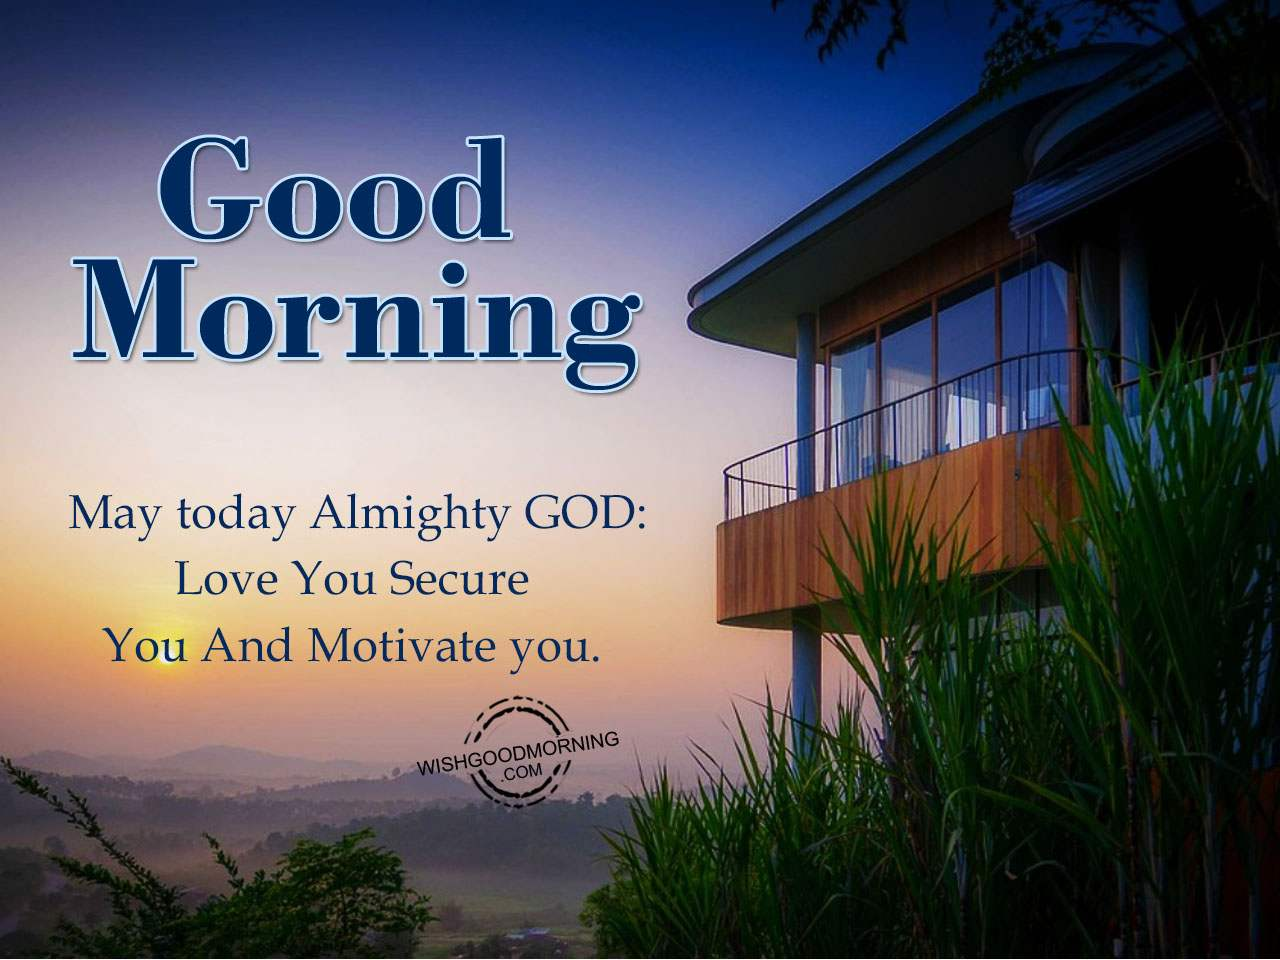 may today almighty god love you secure you and motivate you good morning